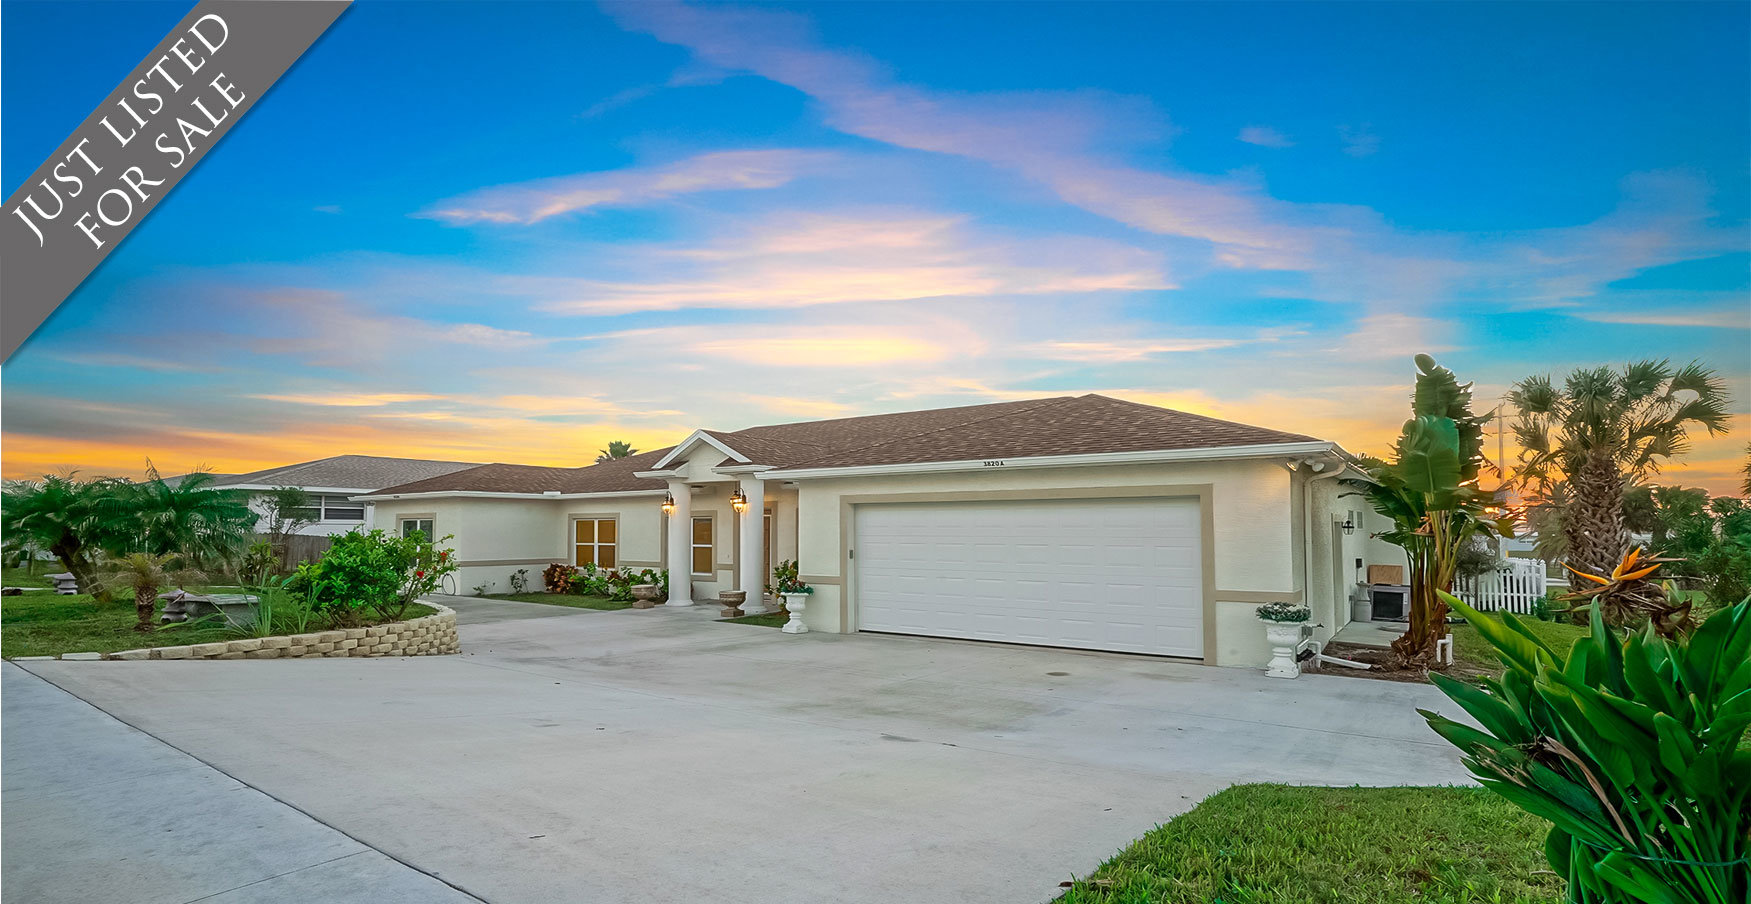 Daytona Beach Shores Homes For Sale with In-law Suite